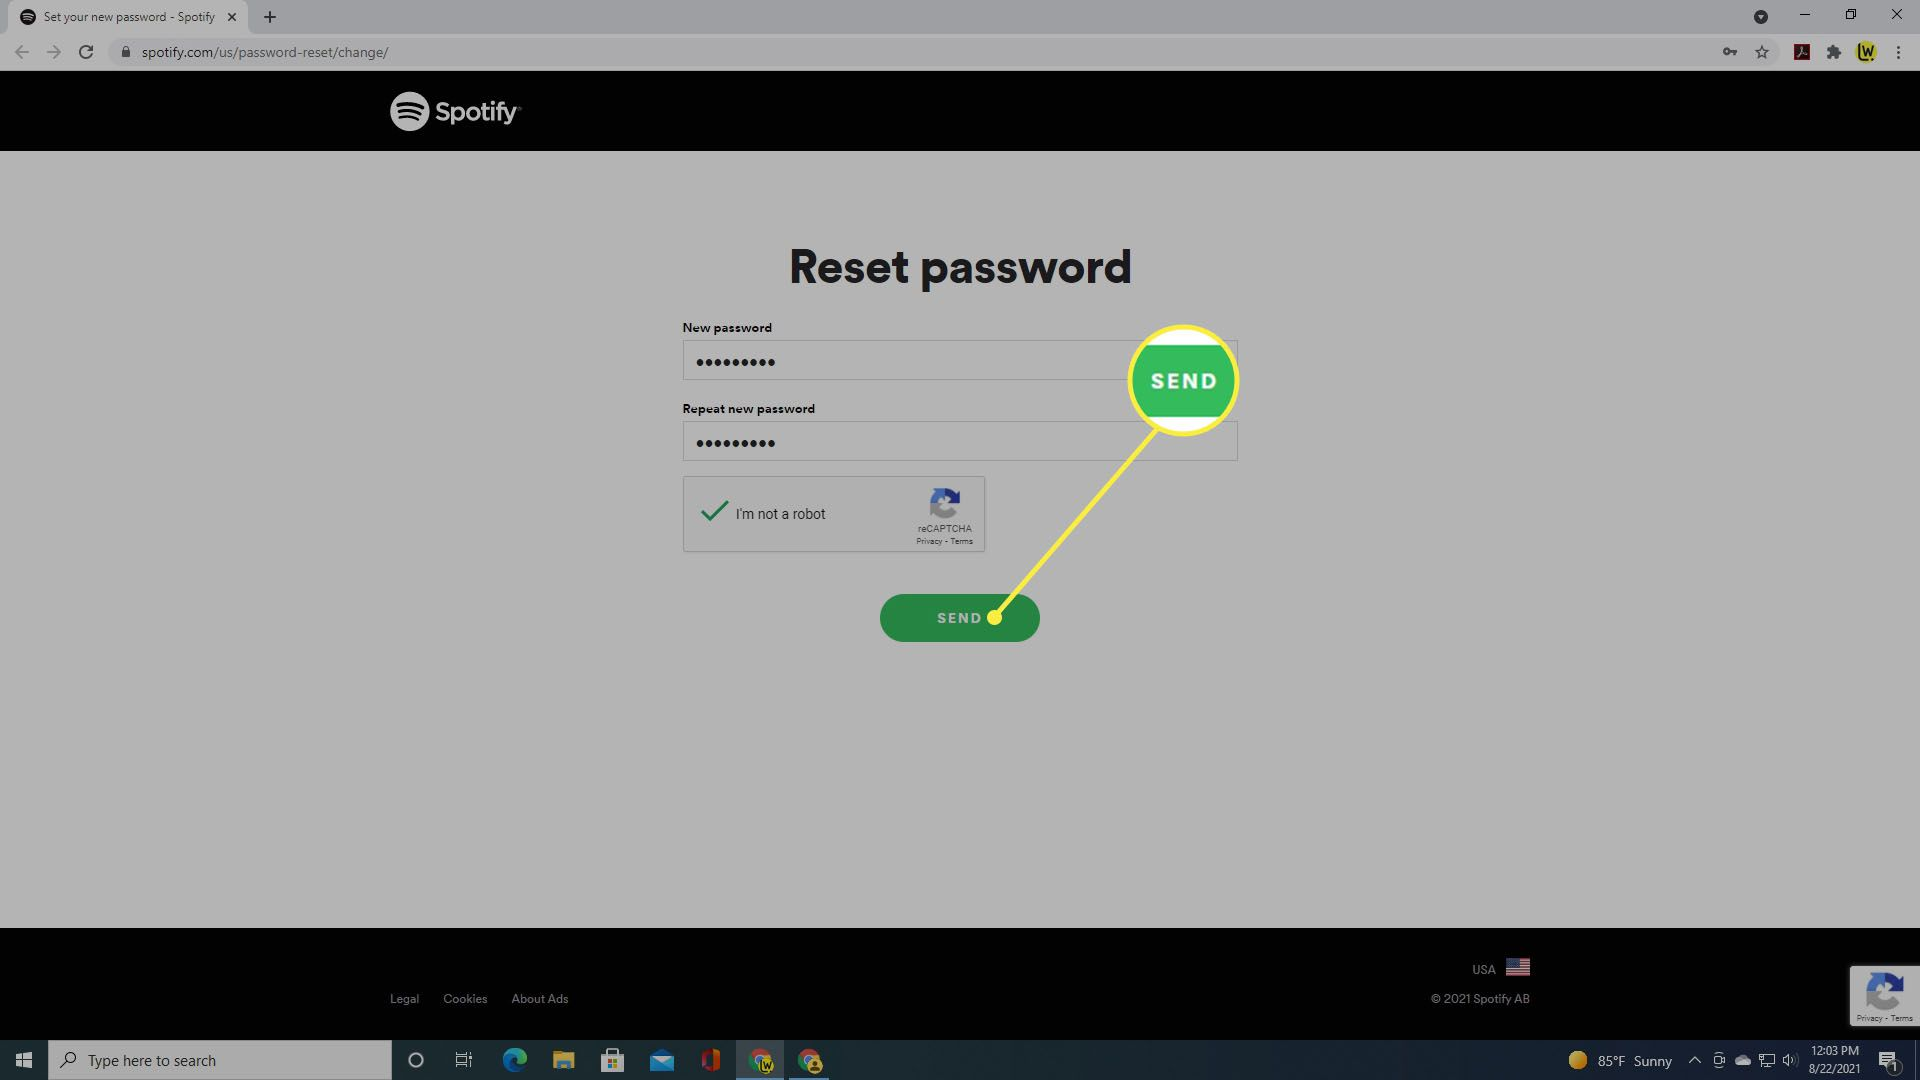 Selecting Send to complete resetting your password for Spotify.